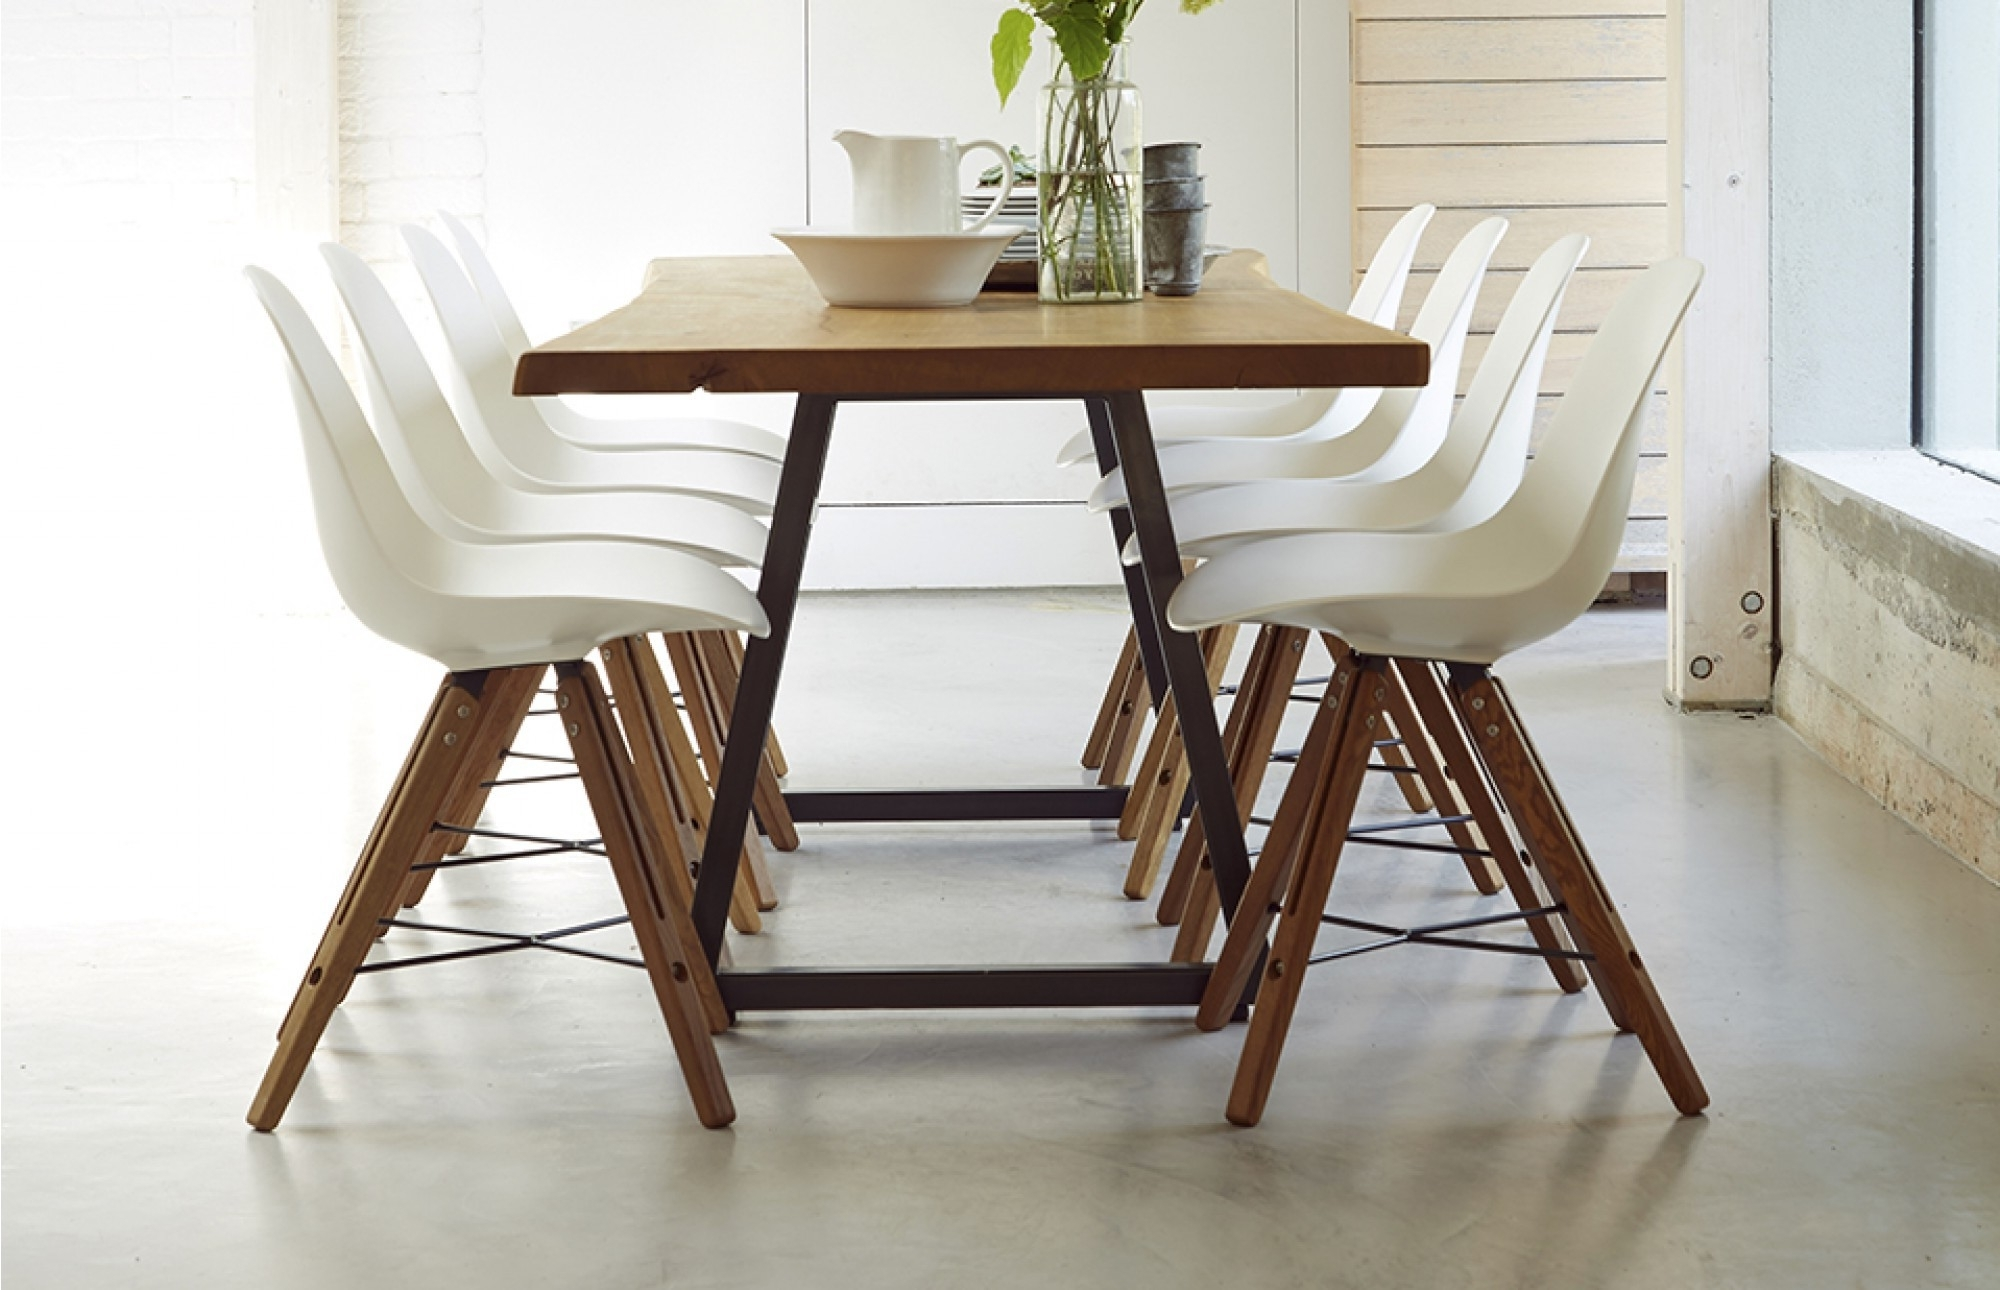 8 Chairs Dining Tables in Famous Dining Table Sets 8 Chairs Elegant Luxury Contemporary Tables And 22